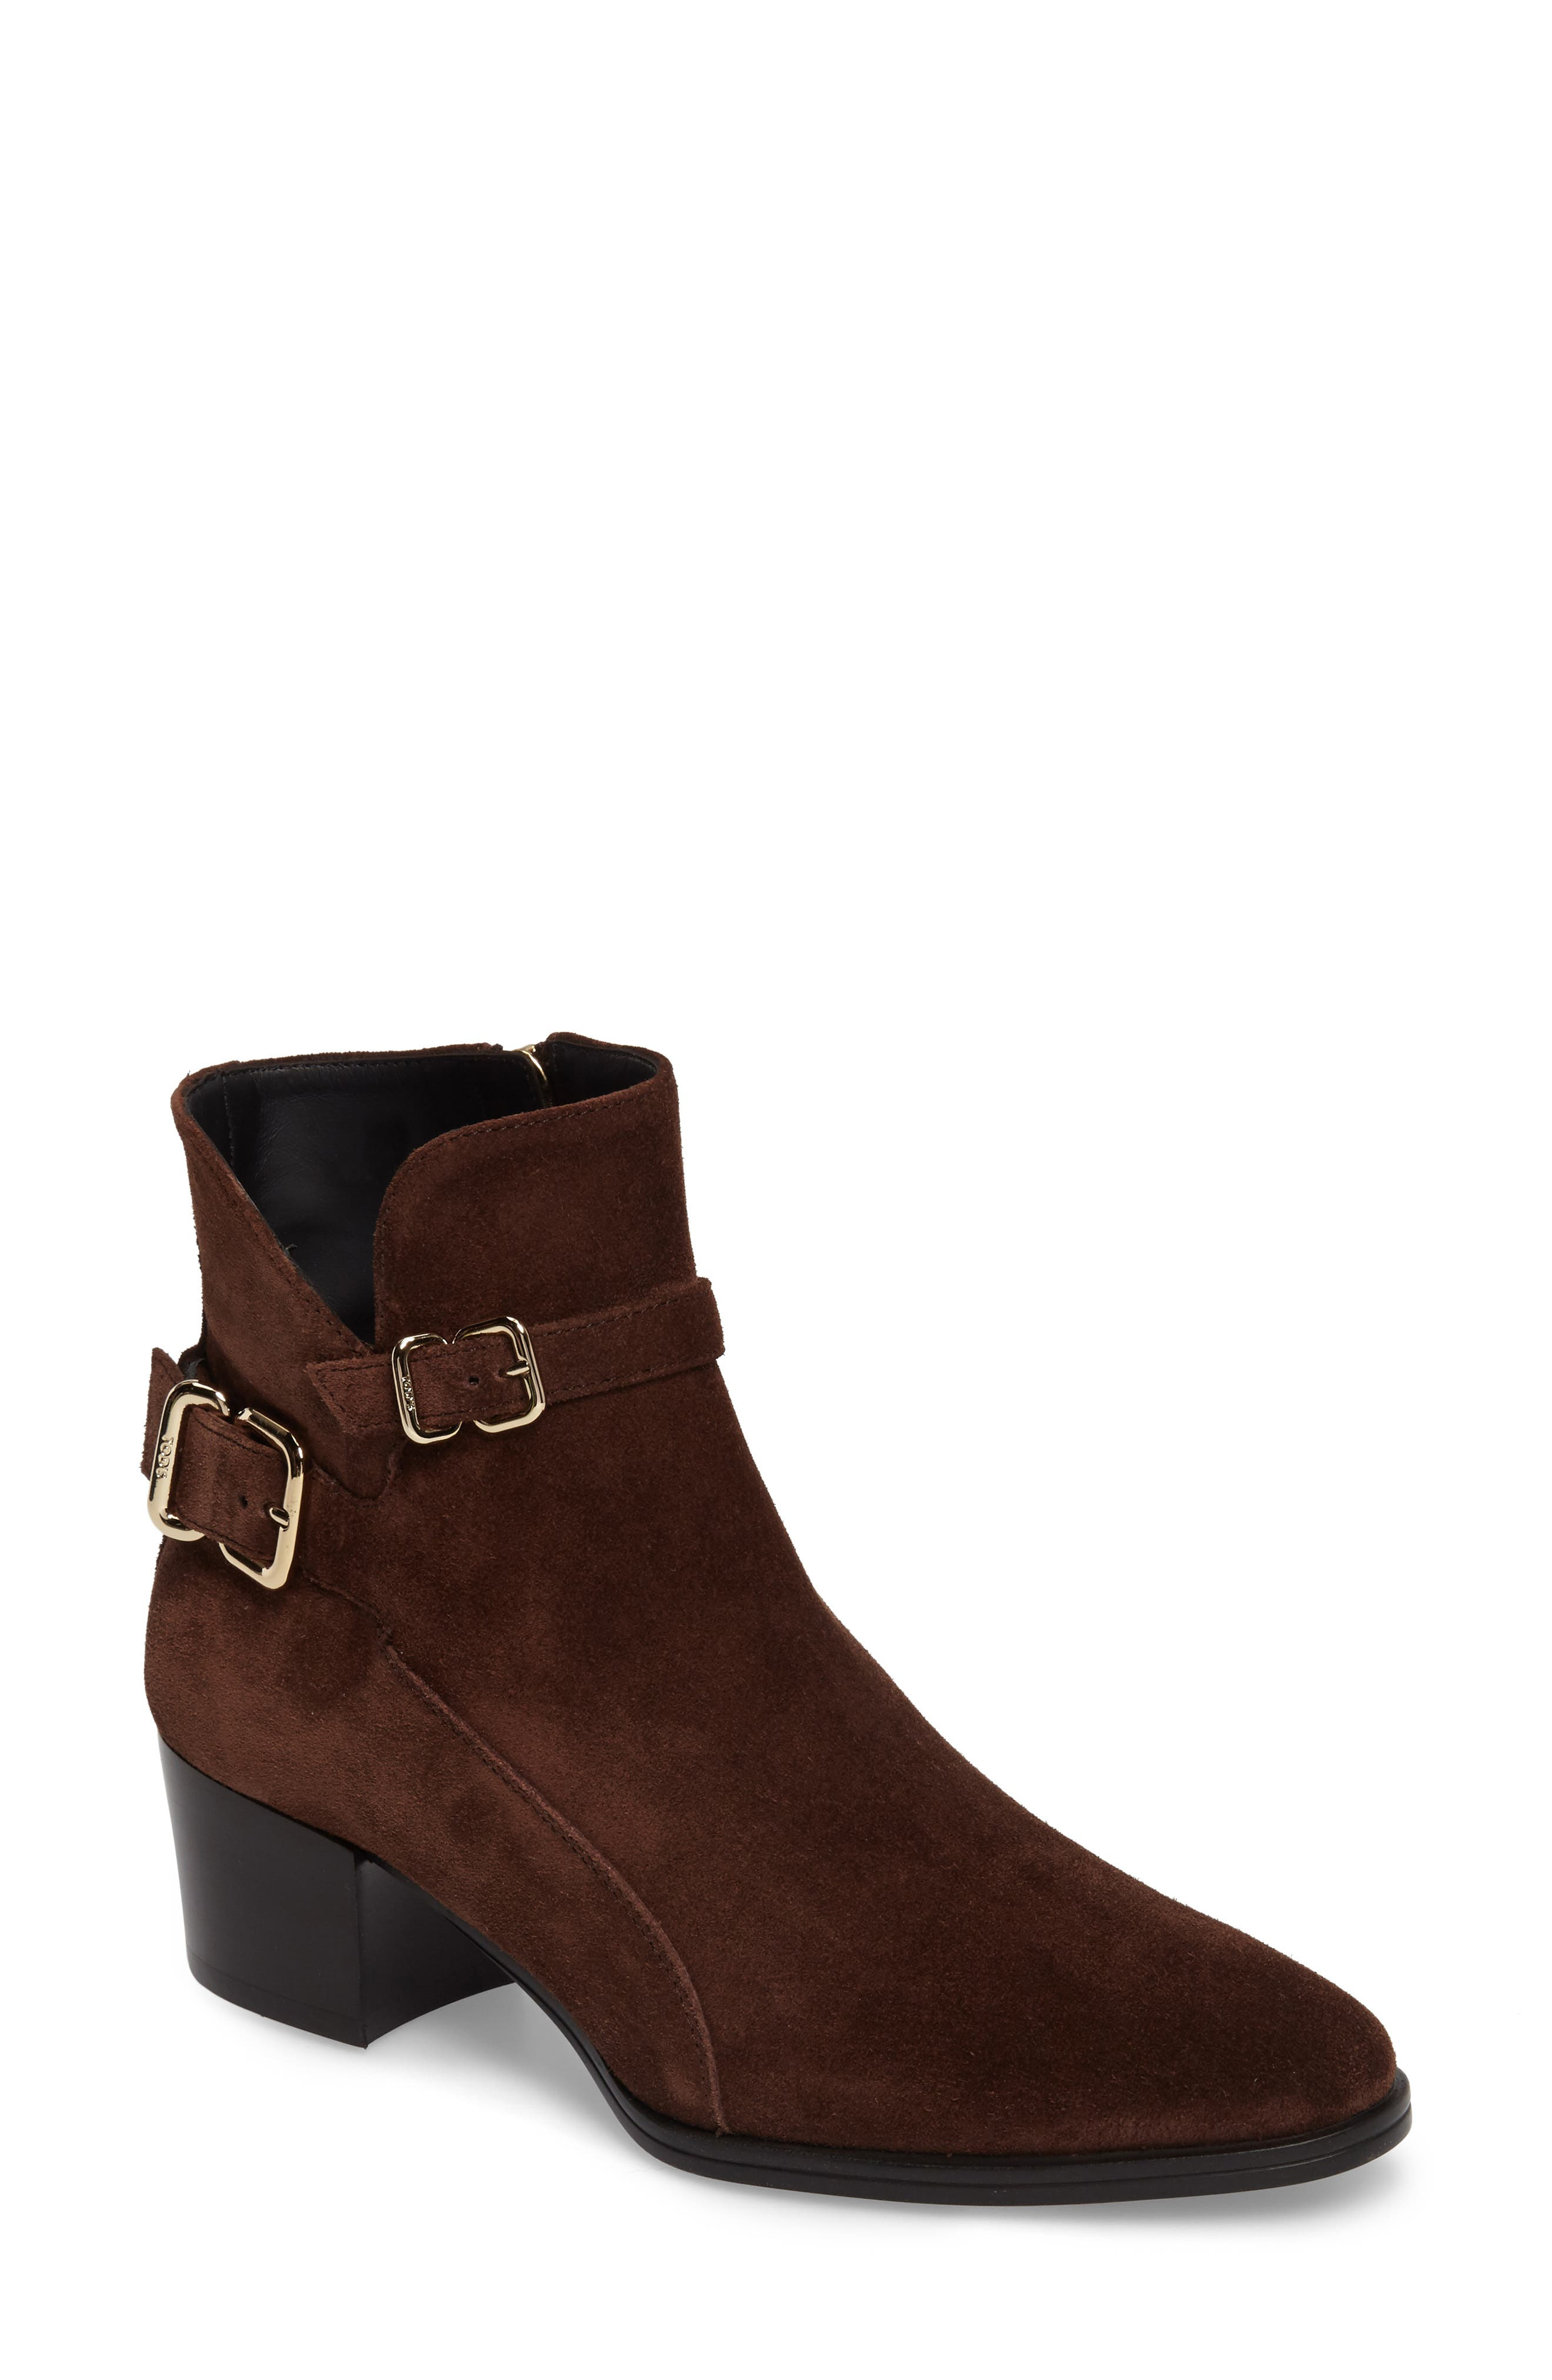 Alternate Image 1 Selected - Tod's Buckle Bootie (Women)